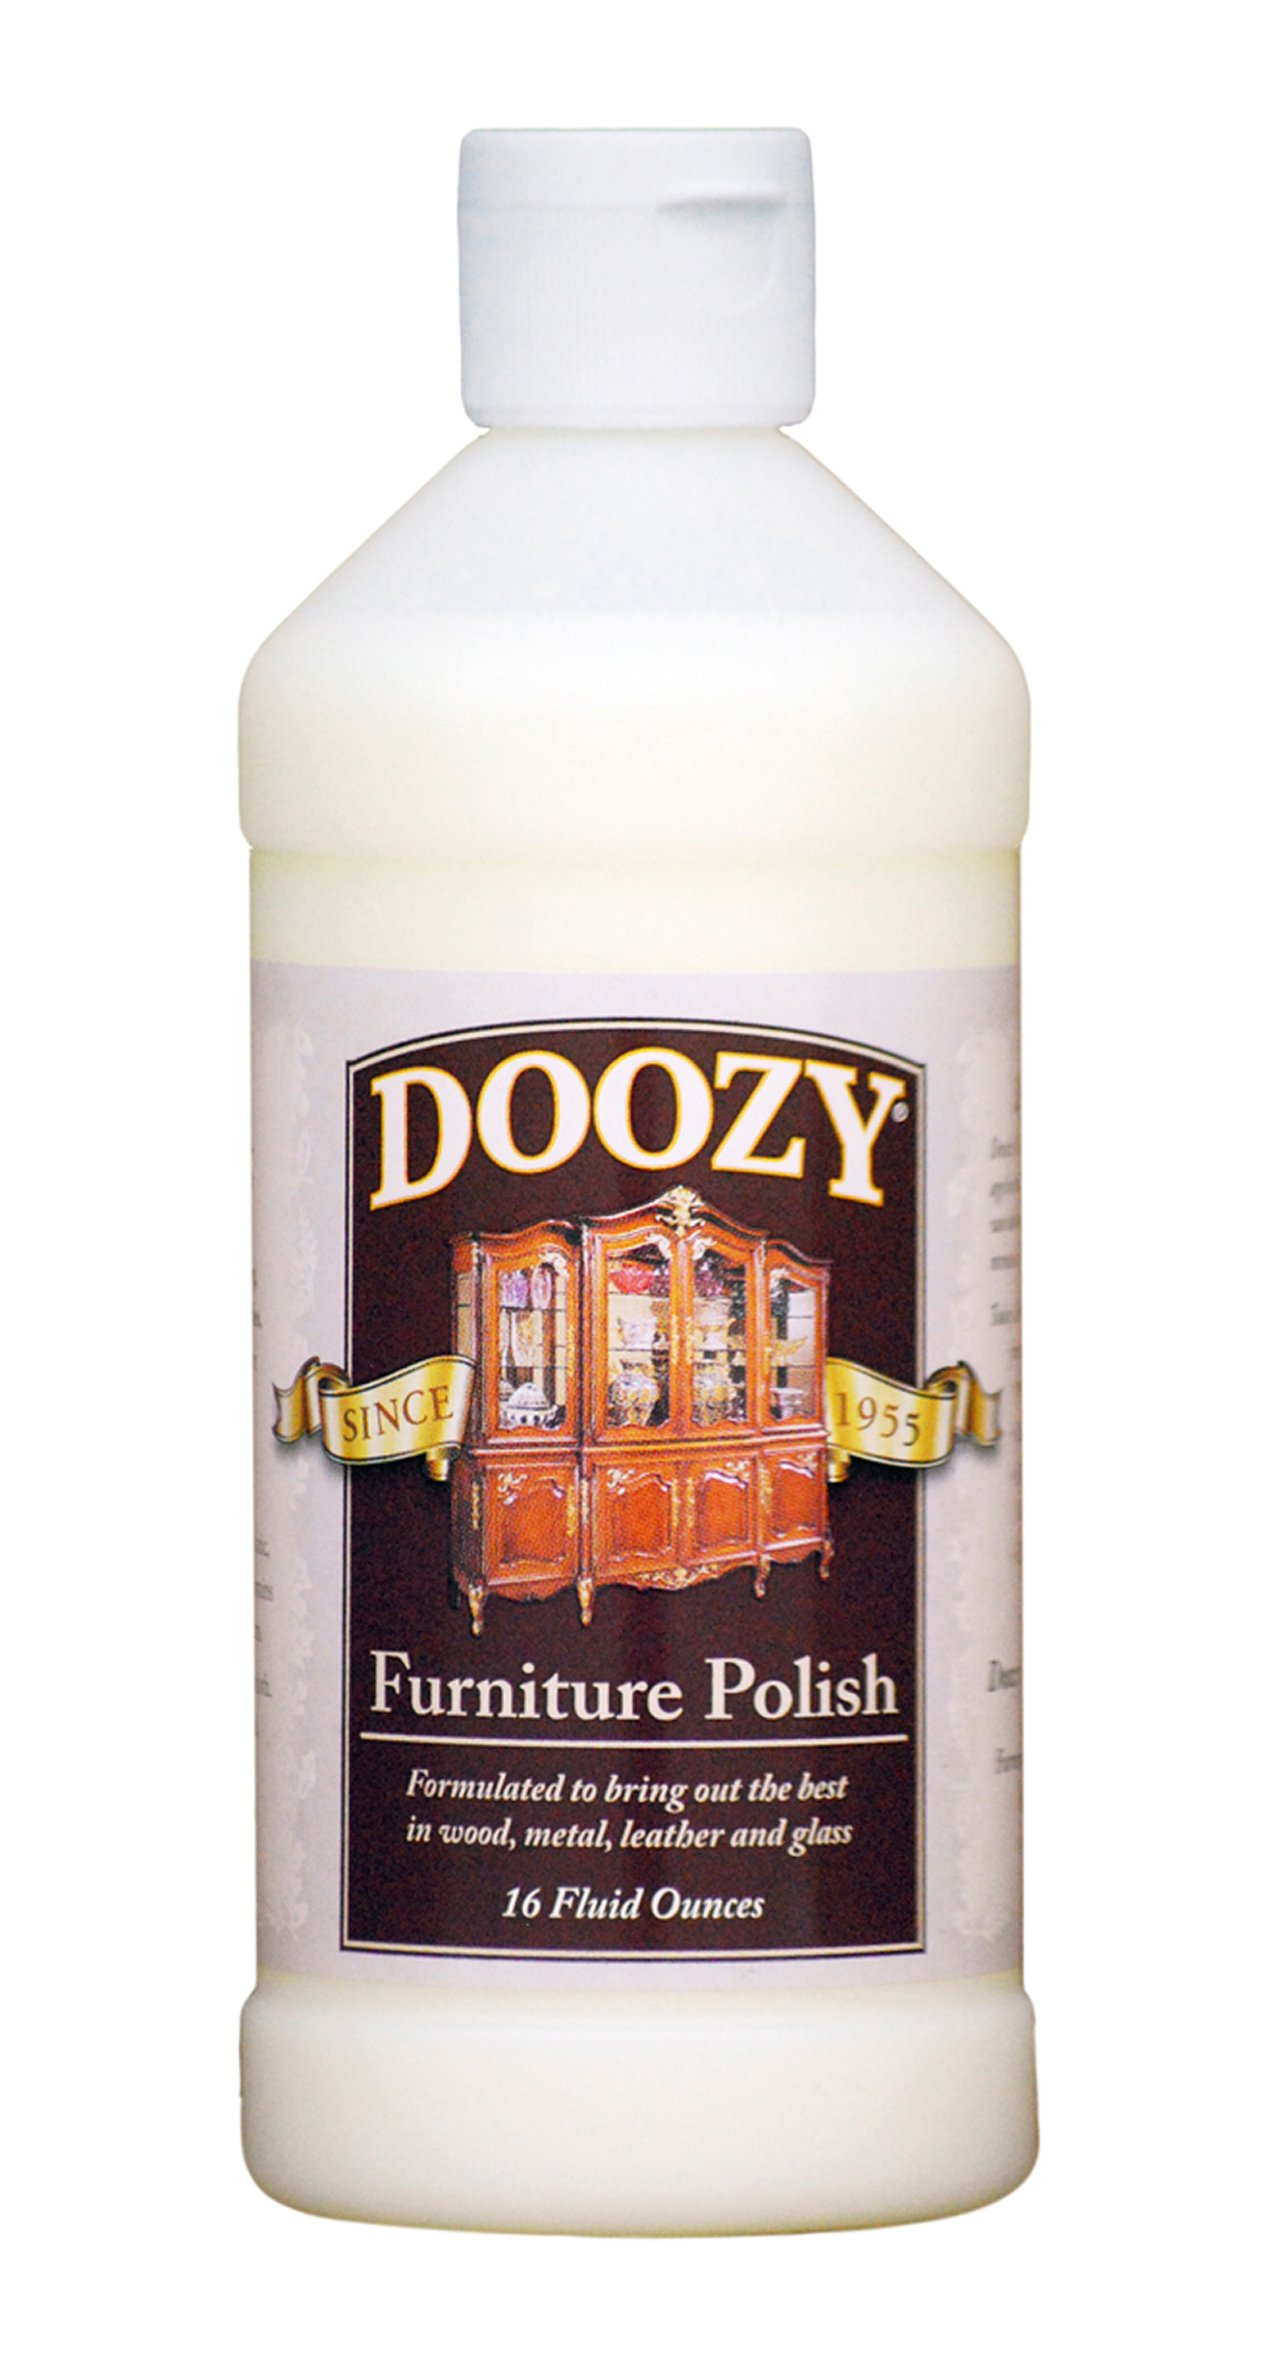 Doozy Furniture Polish, Convenience Size, 16-Ounce by Doozy